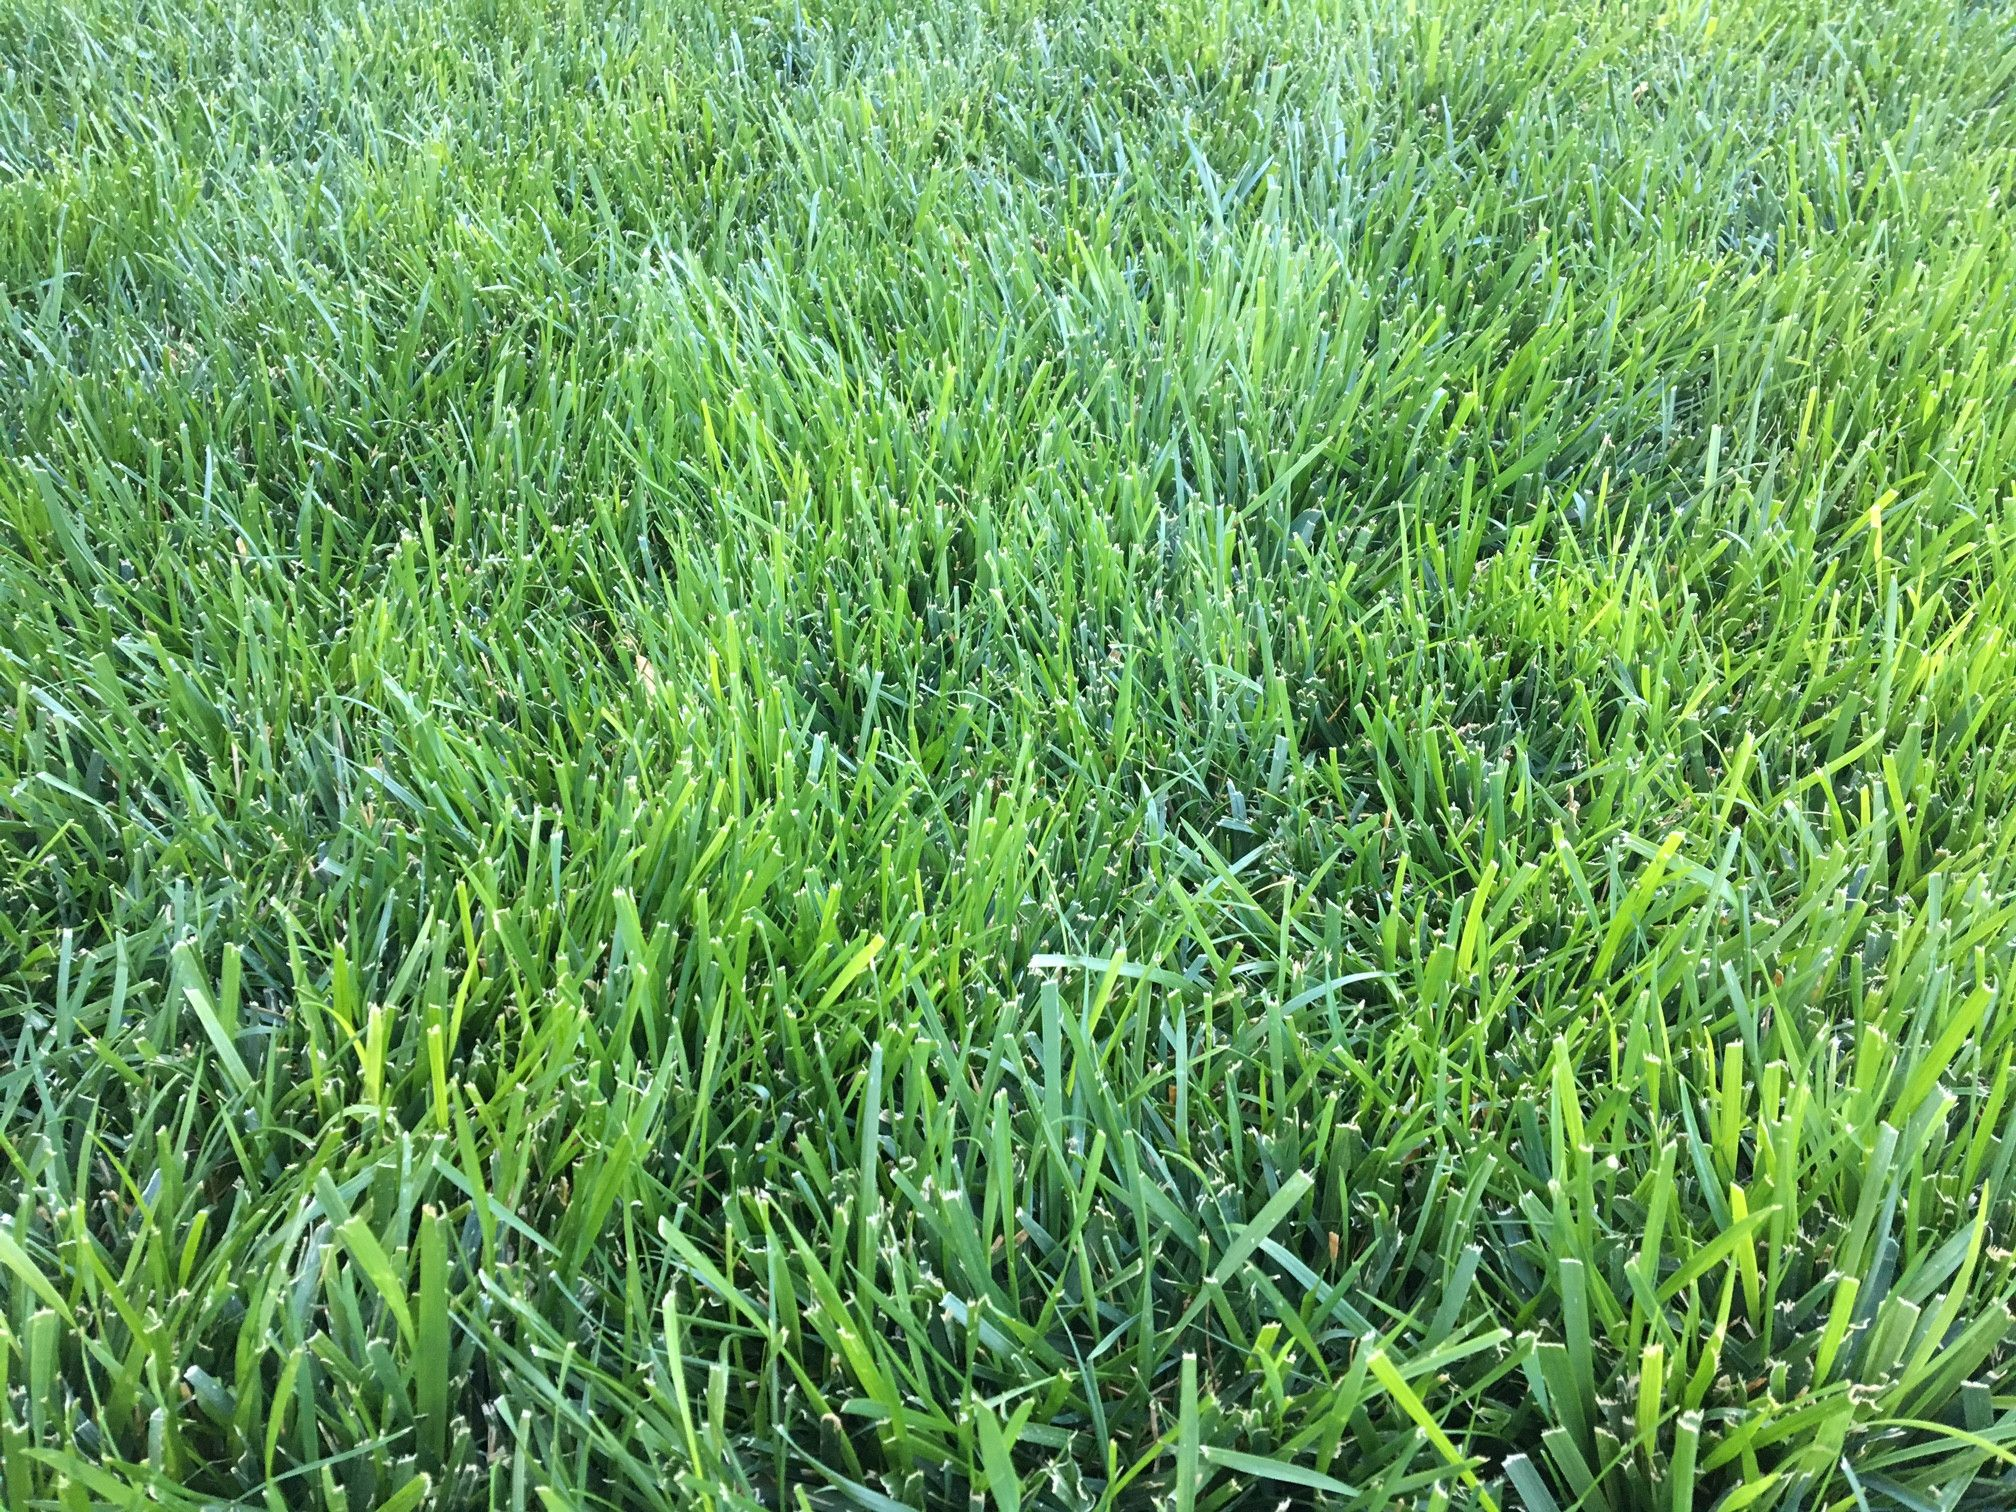 Triple Play Tall Fescue Seed Blend Tall Fescue Fescue Tall Fescue Lawn